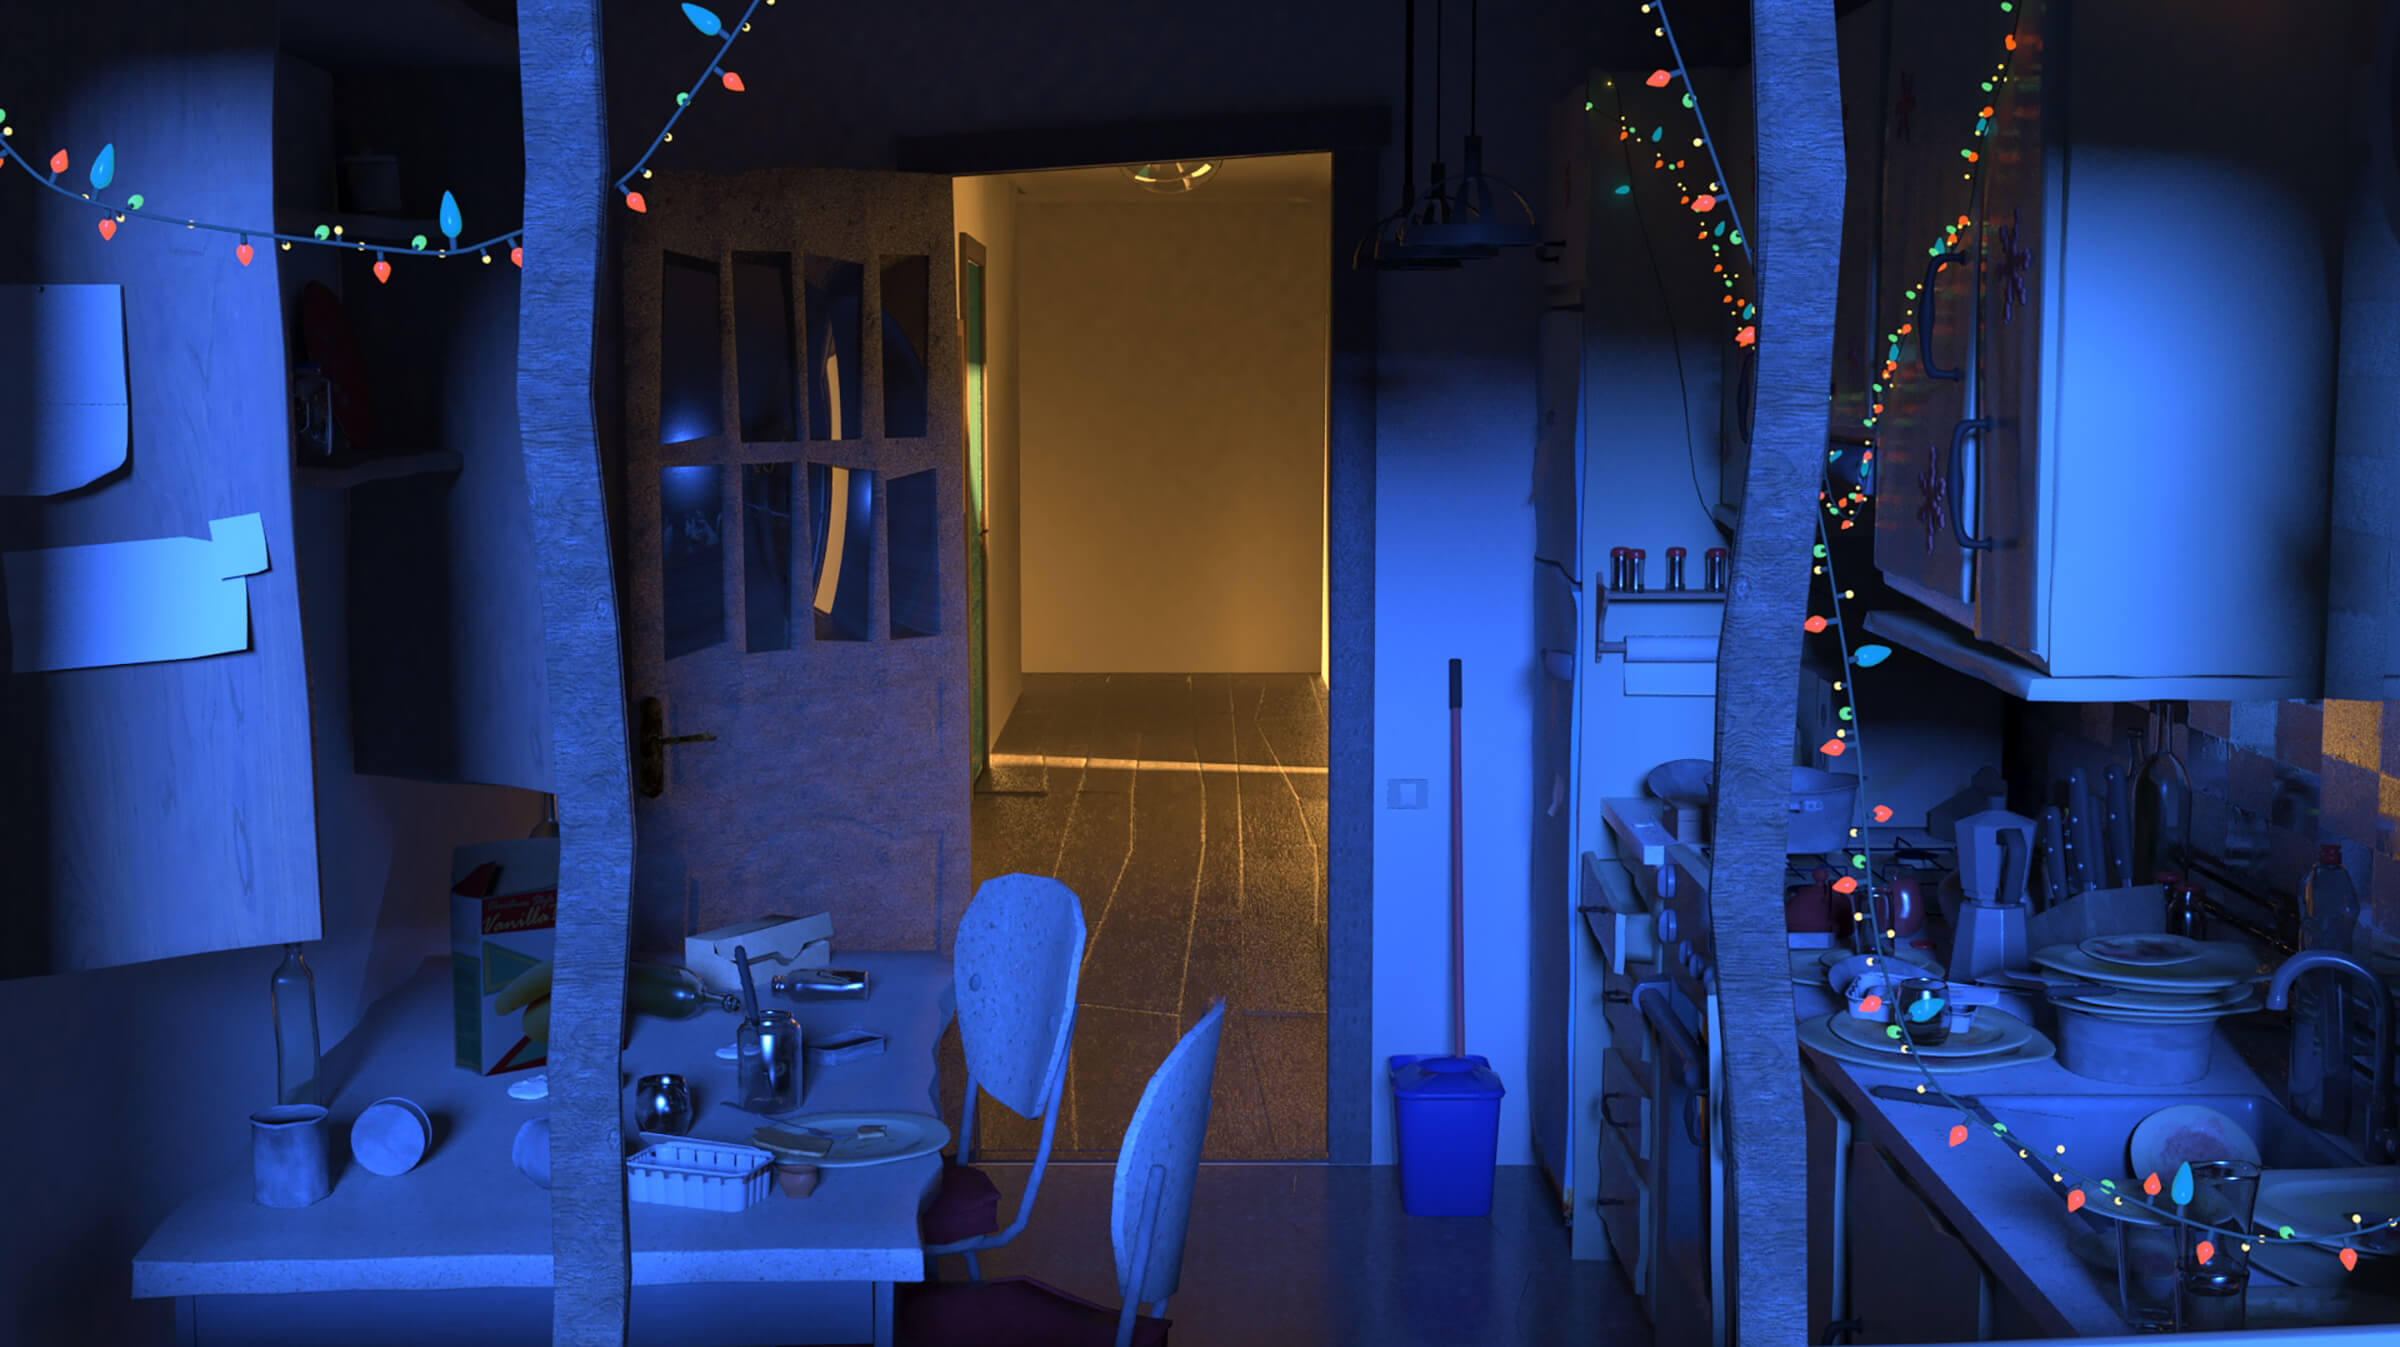 A darkened, messy kitchen decorated with festive lights. A door opened to a lit hallway is in the background.